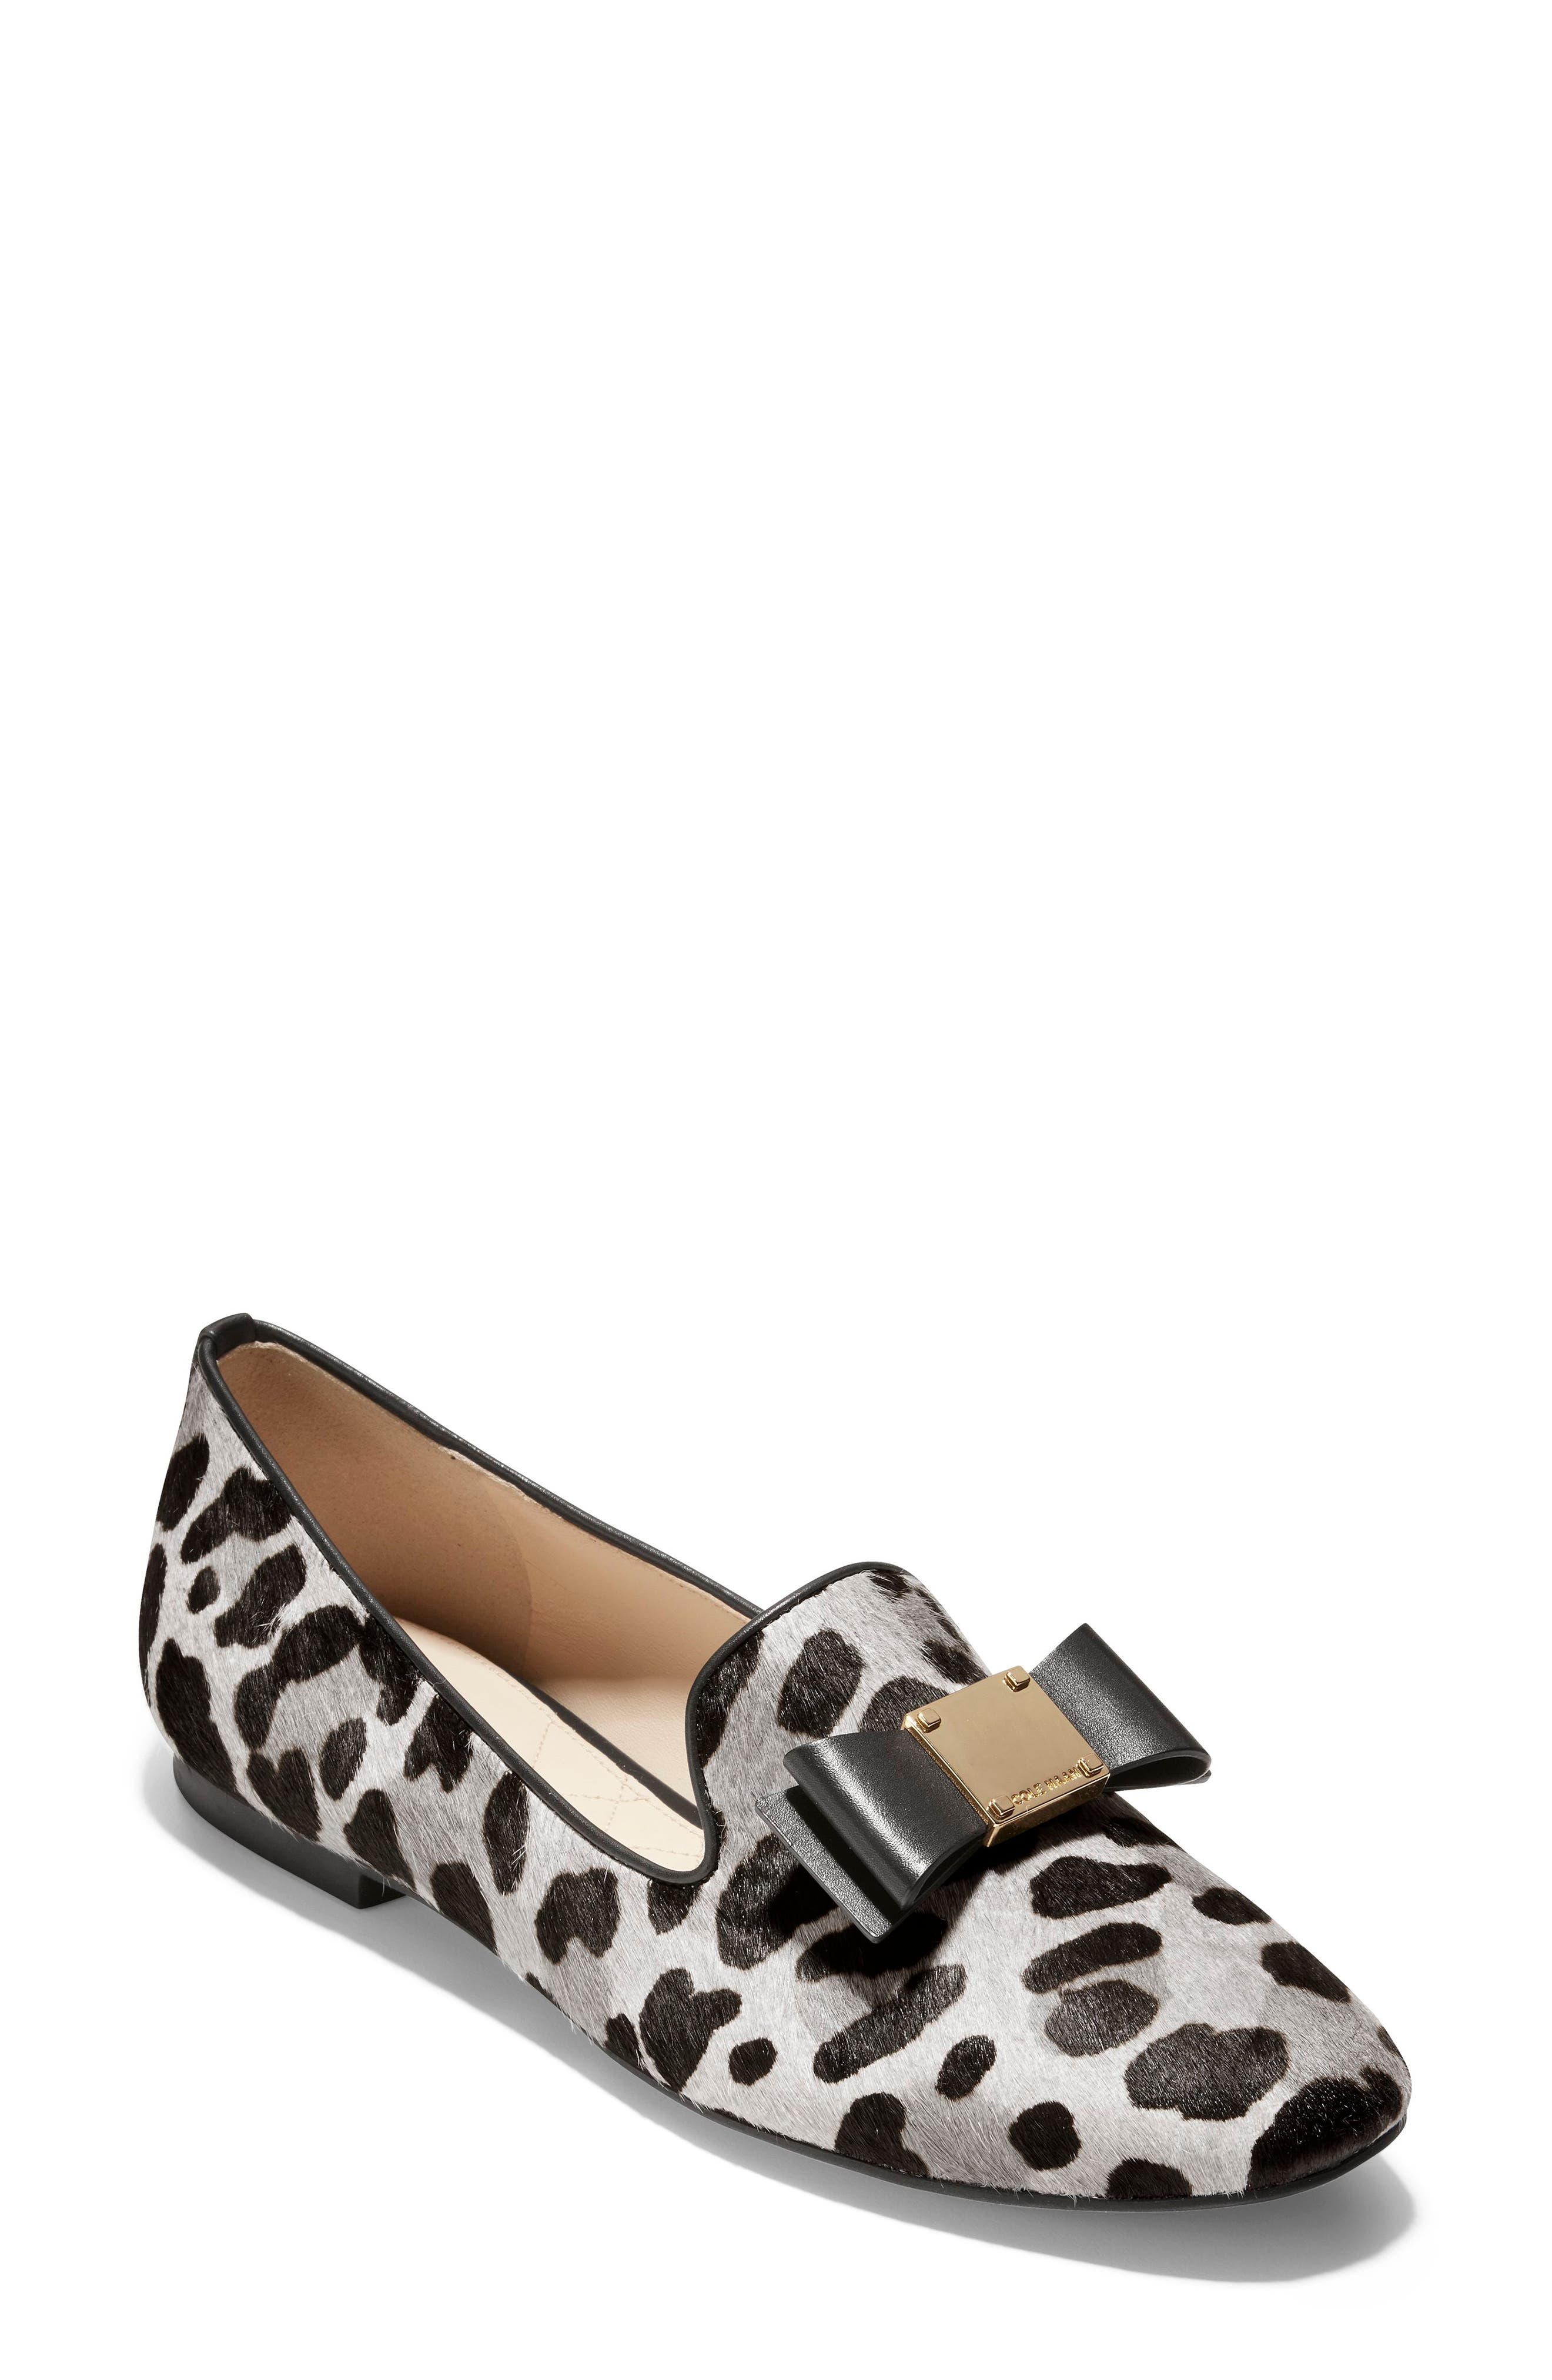 Cole Haan Tali Bow Genuine Calf Hair Loafer